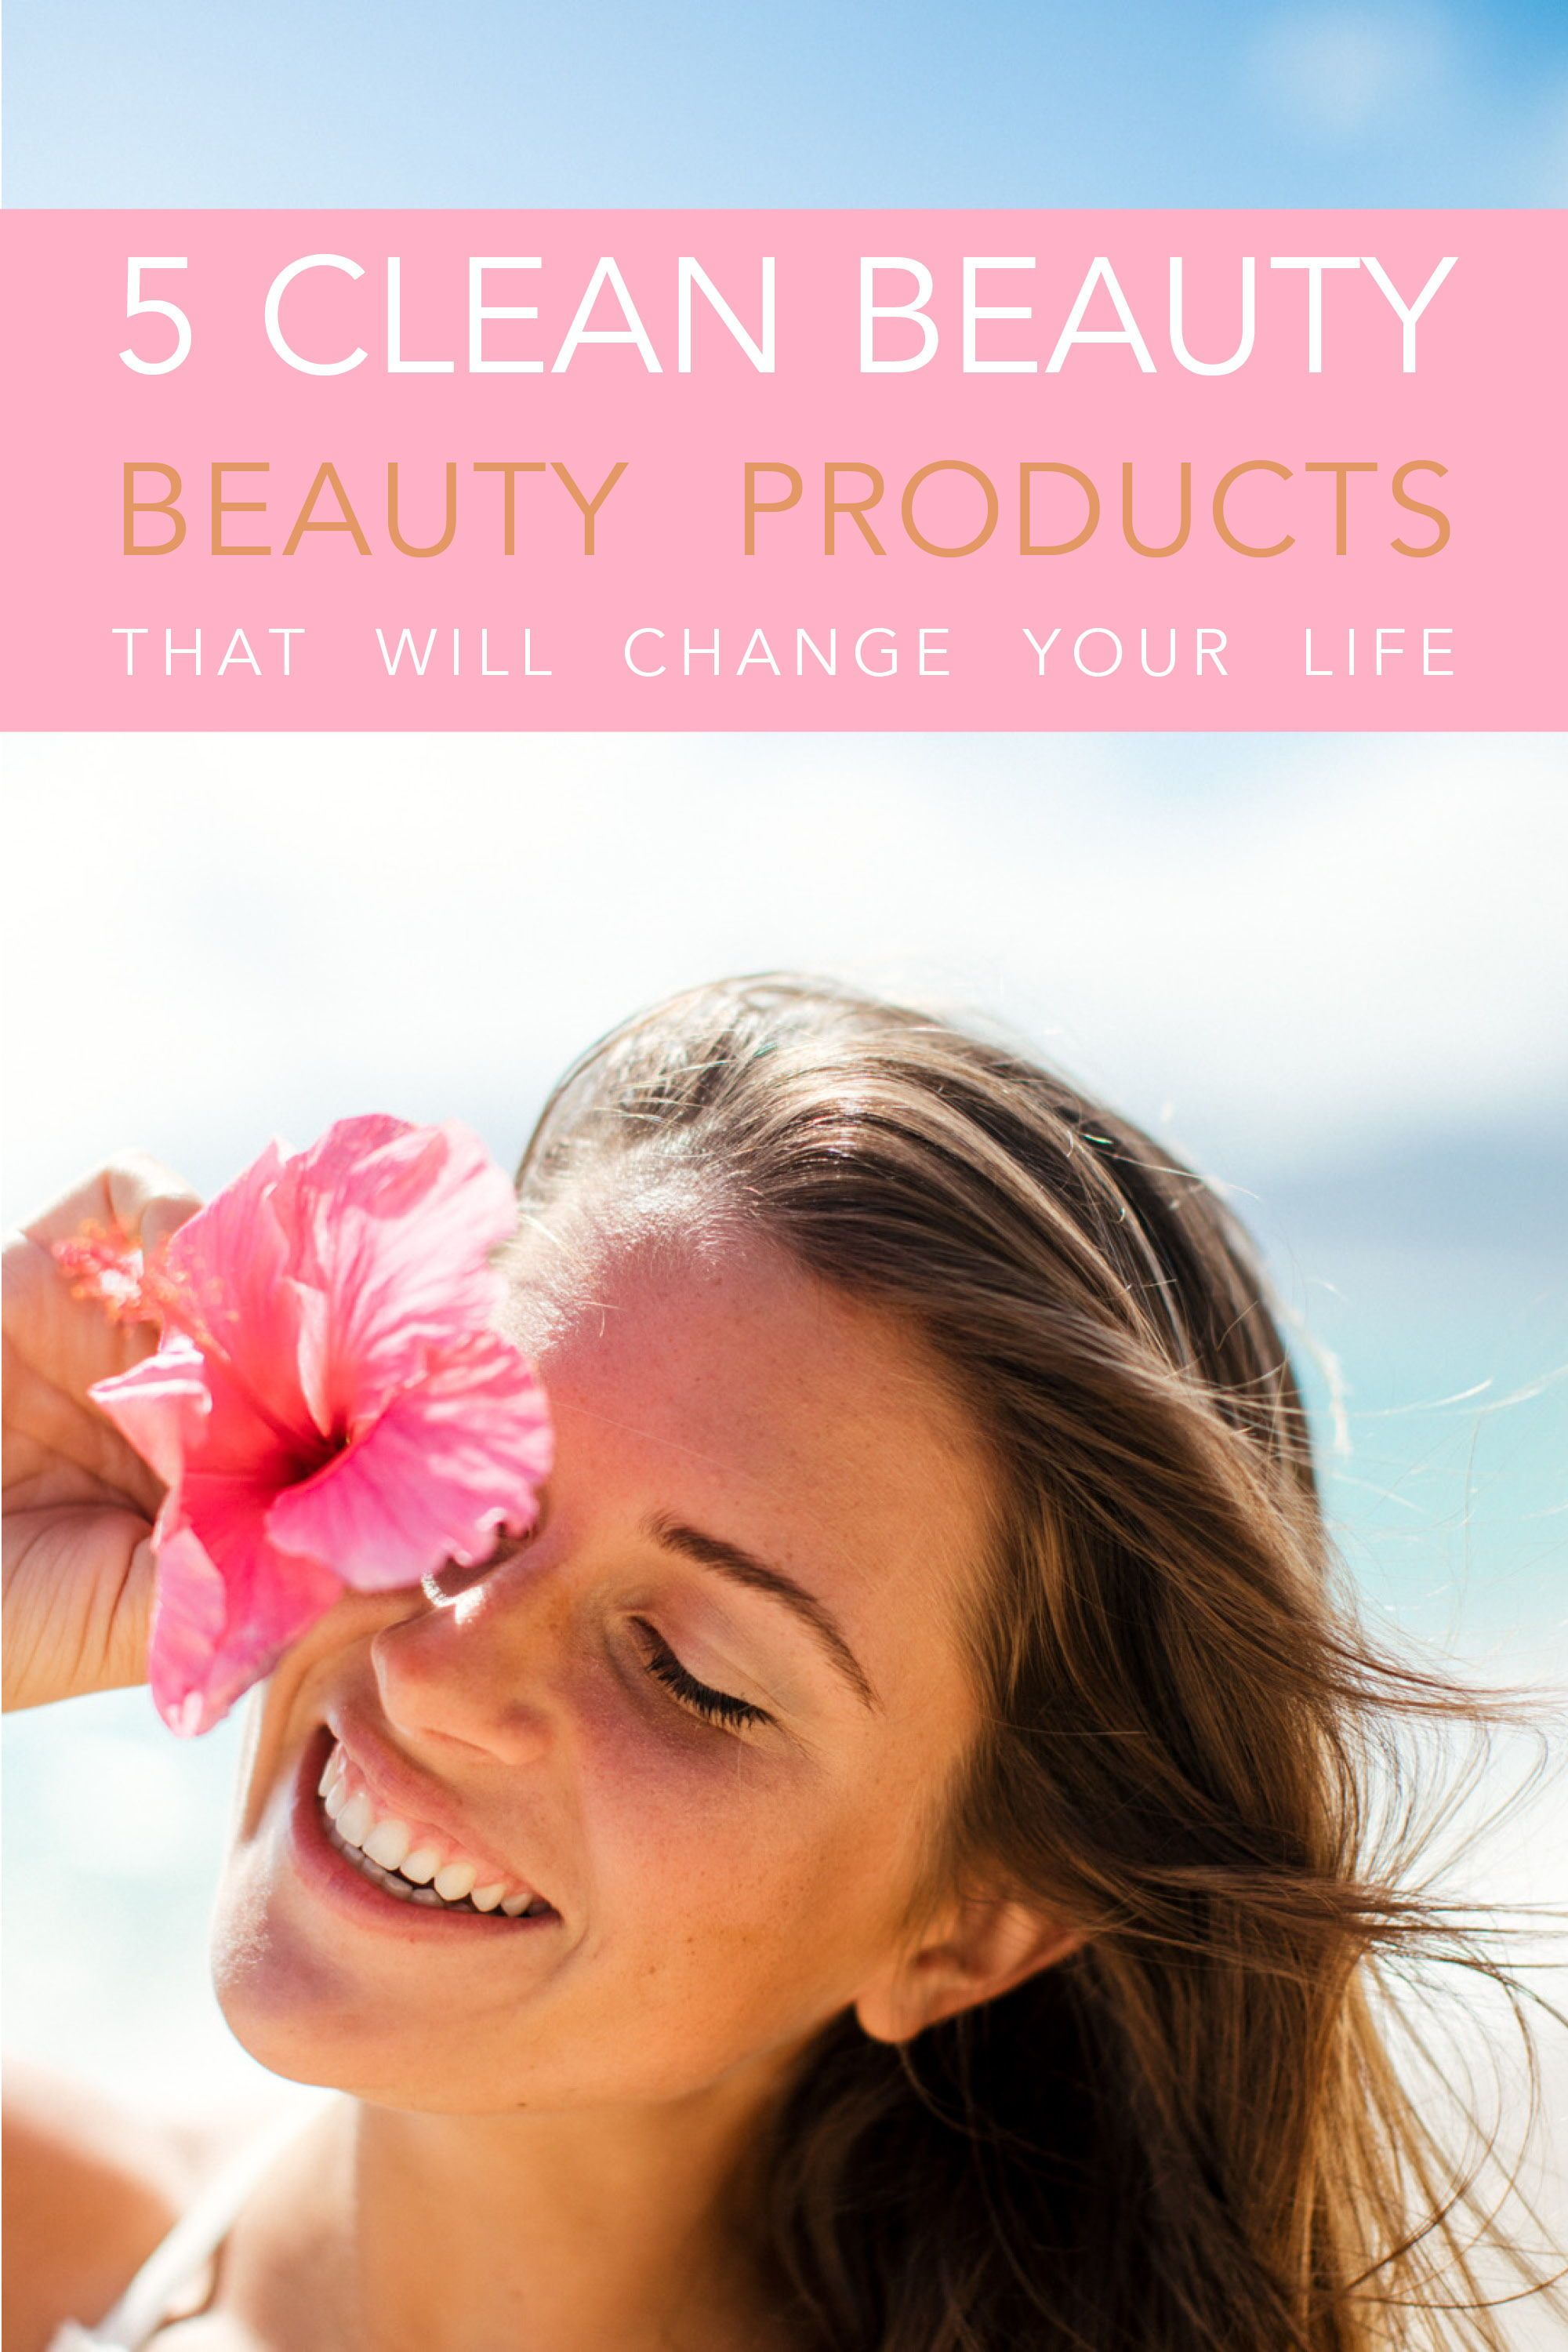 The 5 Clean Beauty & Wellness that I swear by and will change your life! #cleanbeauty #naturalbeauty #cleanproducts #thinkdirtyproducts #beautyonabudget